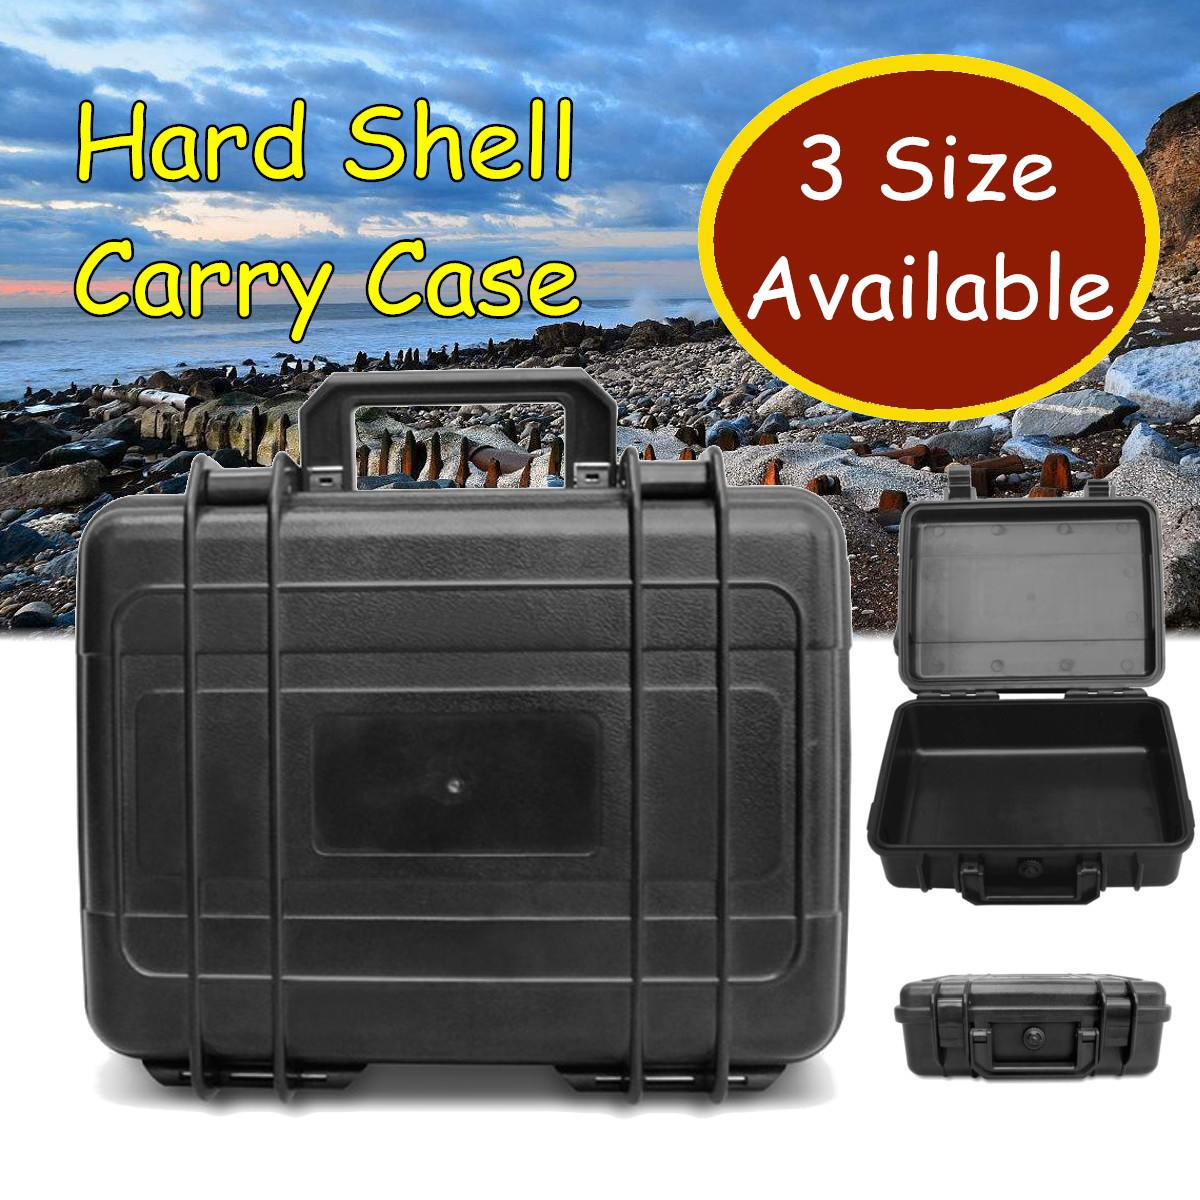 Protective Storage Boxes Hardware Shockproof Toolbox Bag-Tool-Kits Impact Resistant Waterproof Hard Carry Case Plastic Equipment